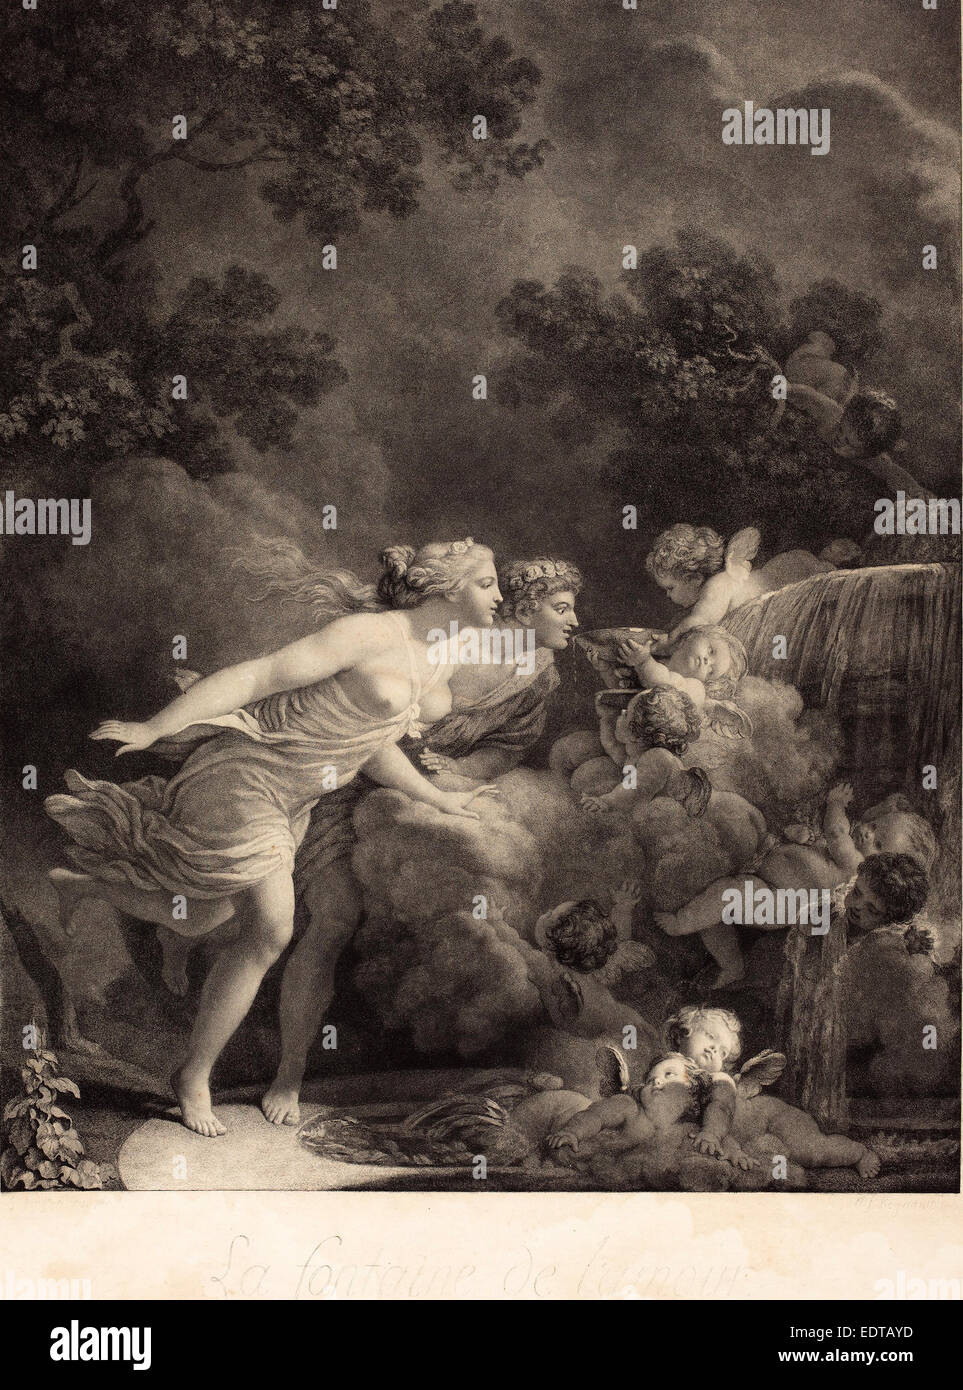 Nicolas Francois Regnault after Jean-Honoré Fragonard (French, 1746 - c. 1810), La Fontaine d'Amour (The Fountain of Love), 1785 Stock Photo